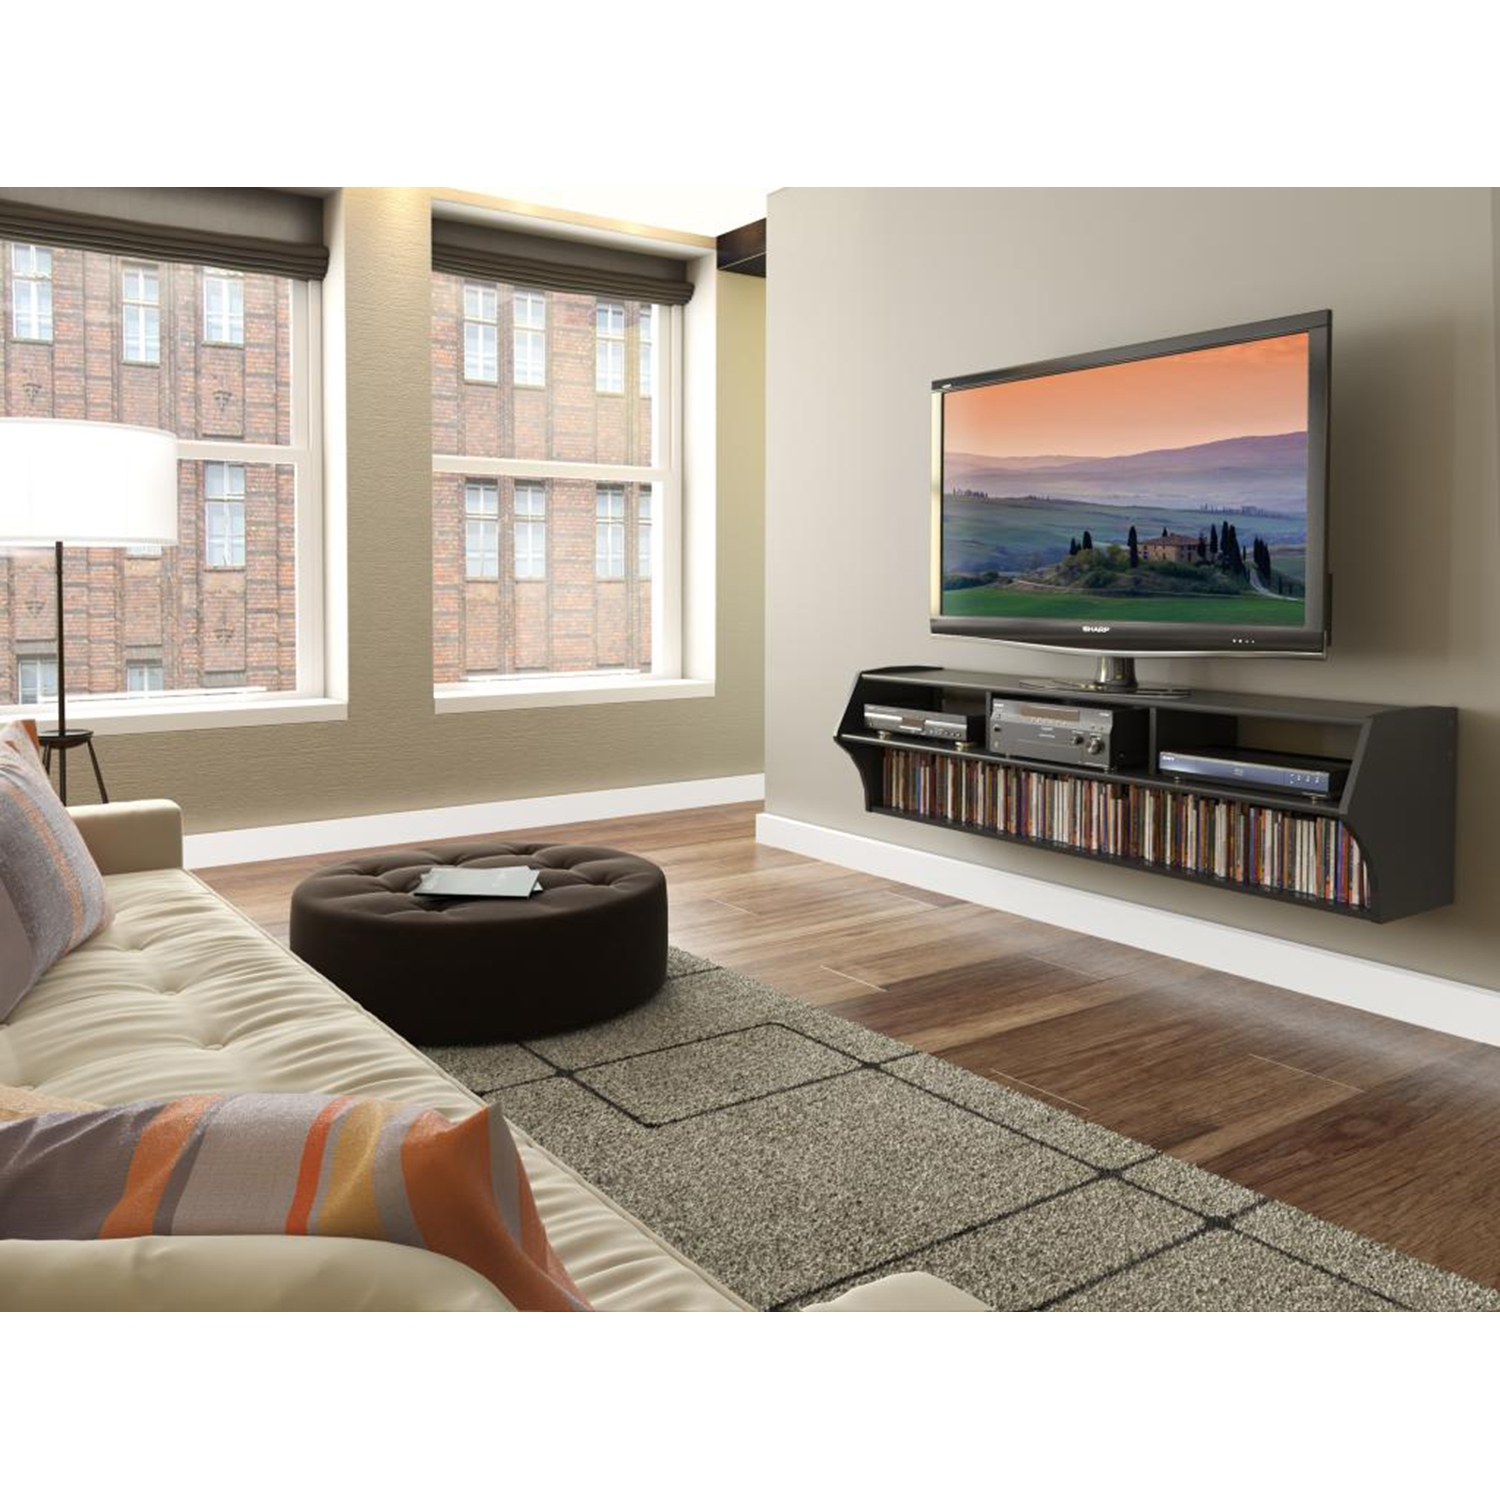 Altus Plus 58 Inch Floating TV Stand - Black - PRE-BCAW-0208-1